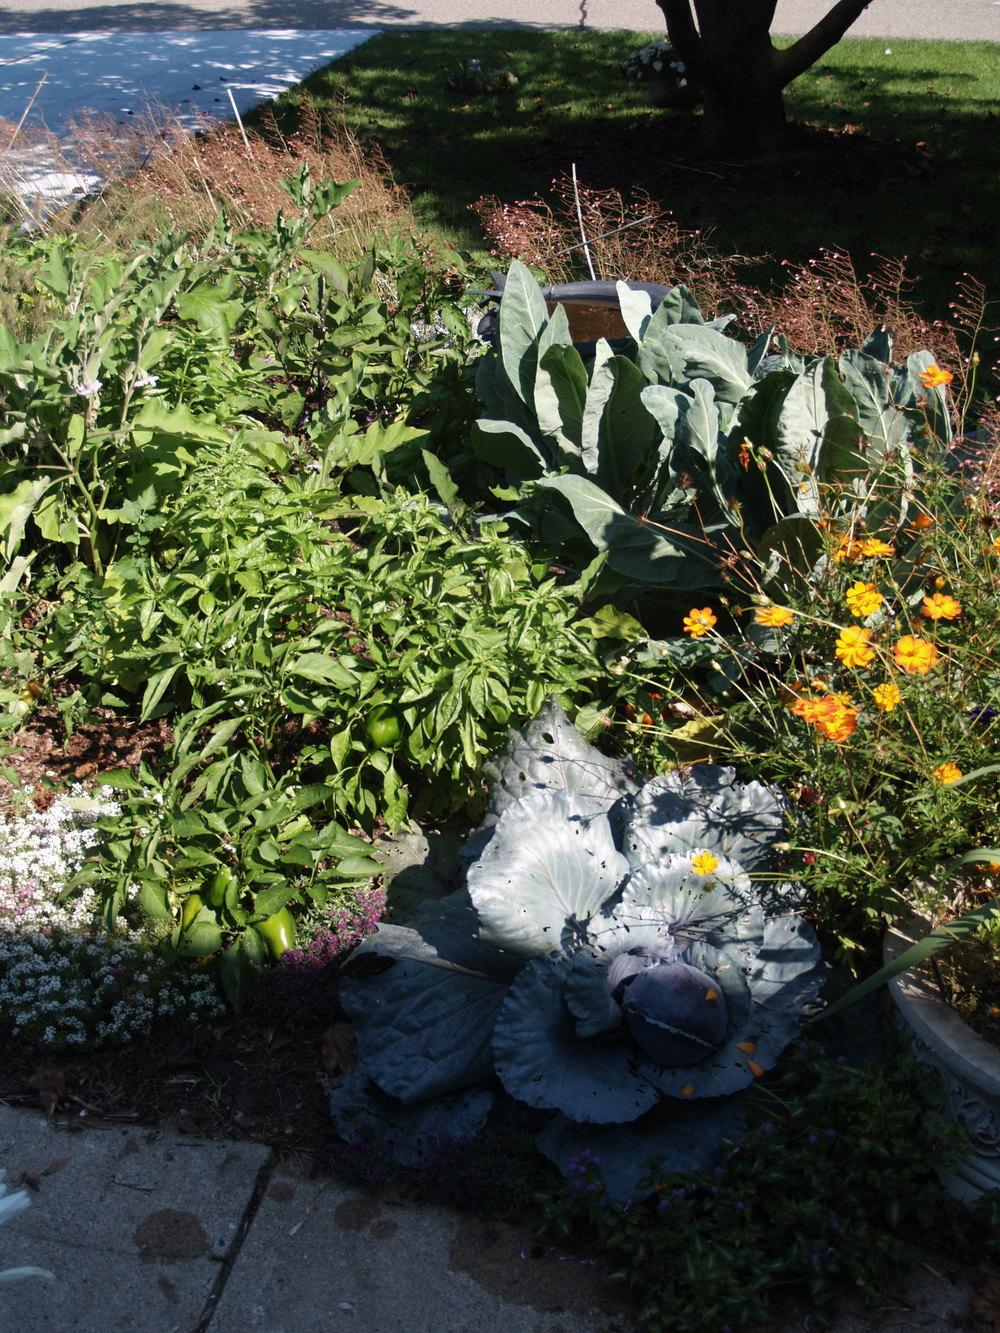 Situate things based on rate of use. Place annual veggies and herbs close to the house so you can tend them often. This landscape includes purple cabbage, bell peppers, broccoli, sweet basil, and a variety of ornamentals.